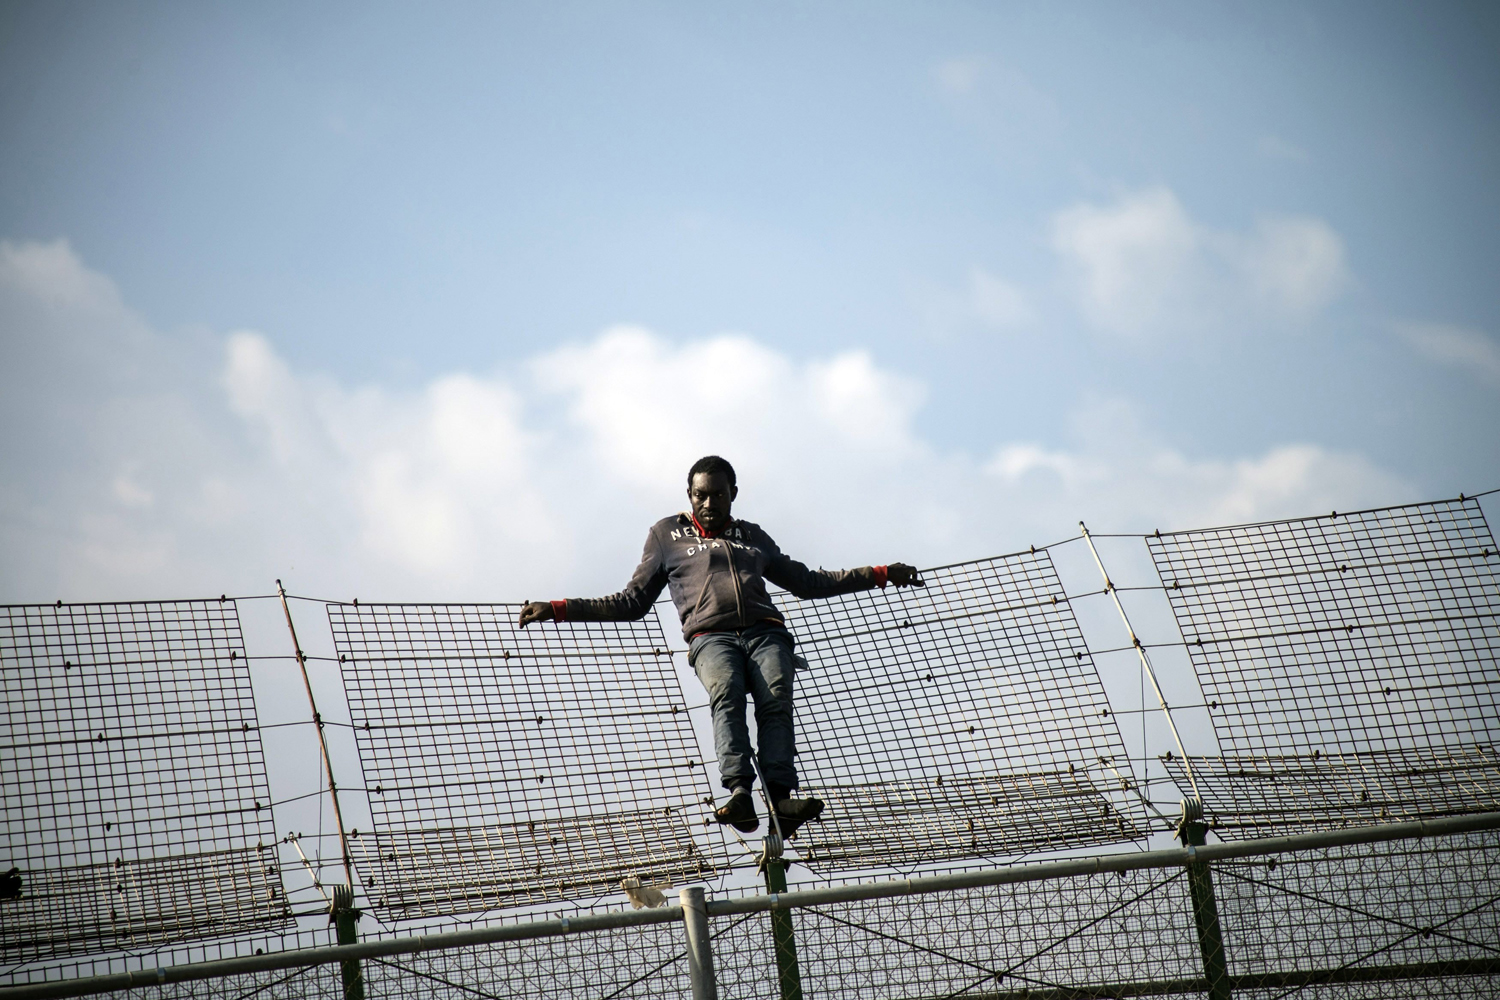 May 1, 2014.  An African migrant rests on a border fence covered in razor wire during a latest attempt to cross into Spanish territory, between Morocco and Spain's north African enclave of Melilla.